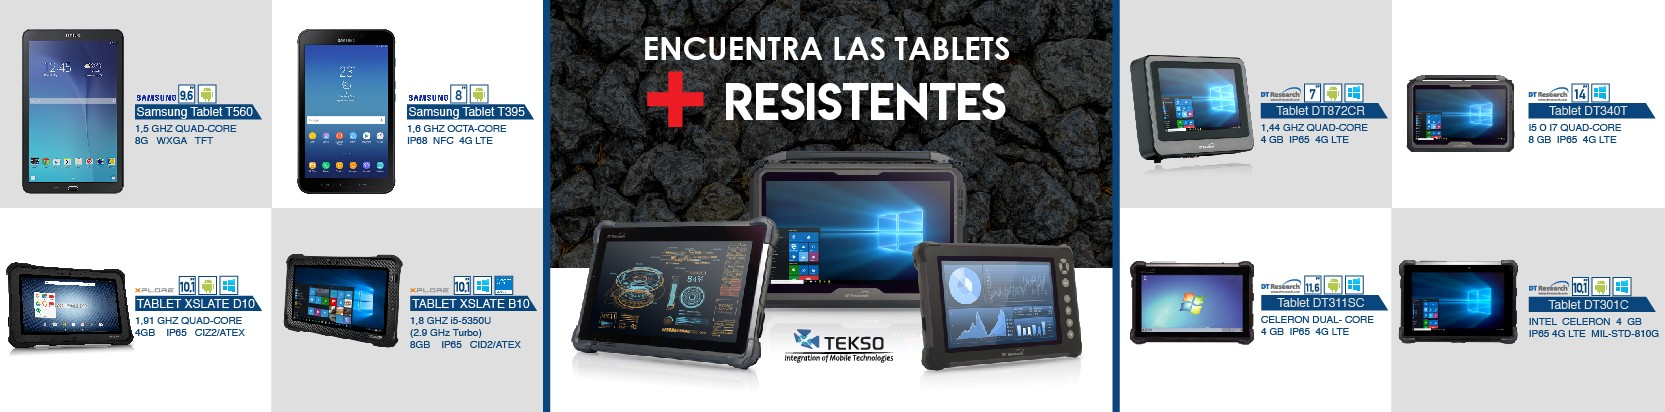 Tablets rugged